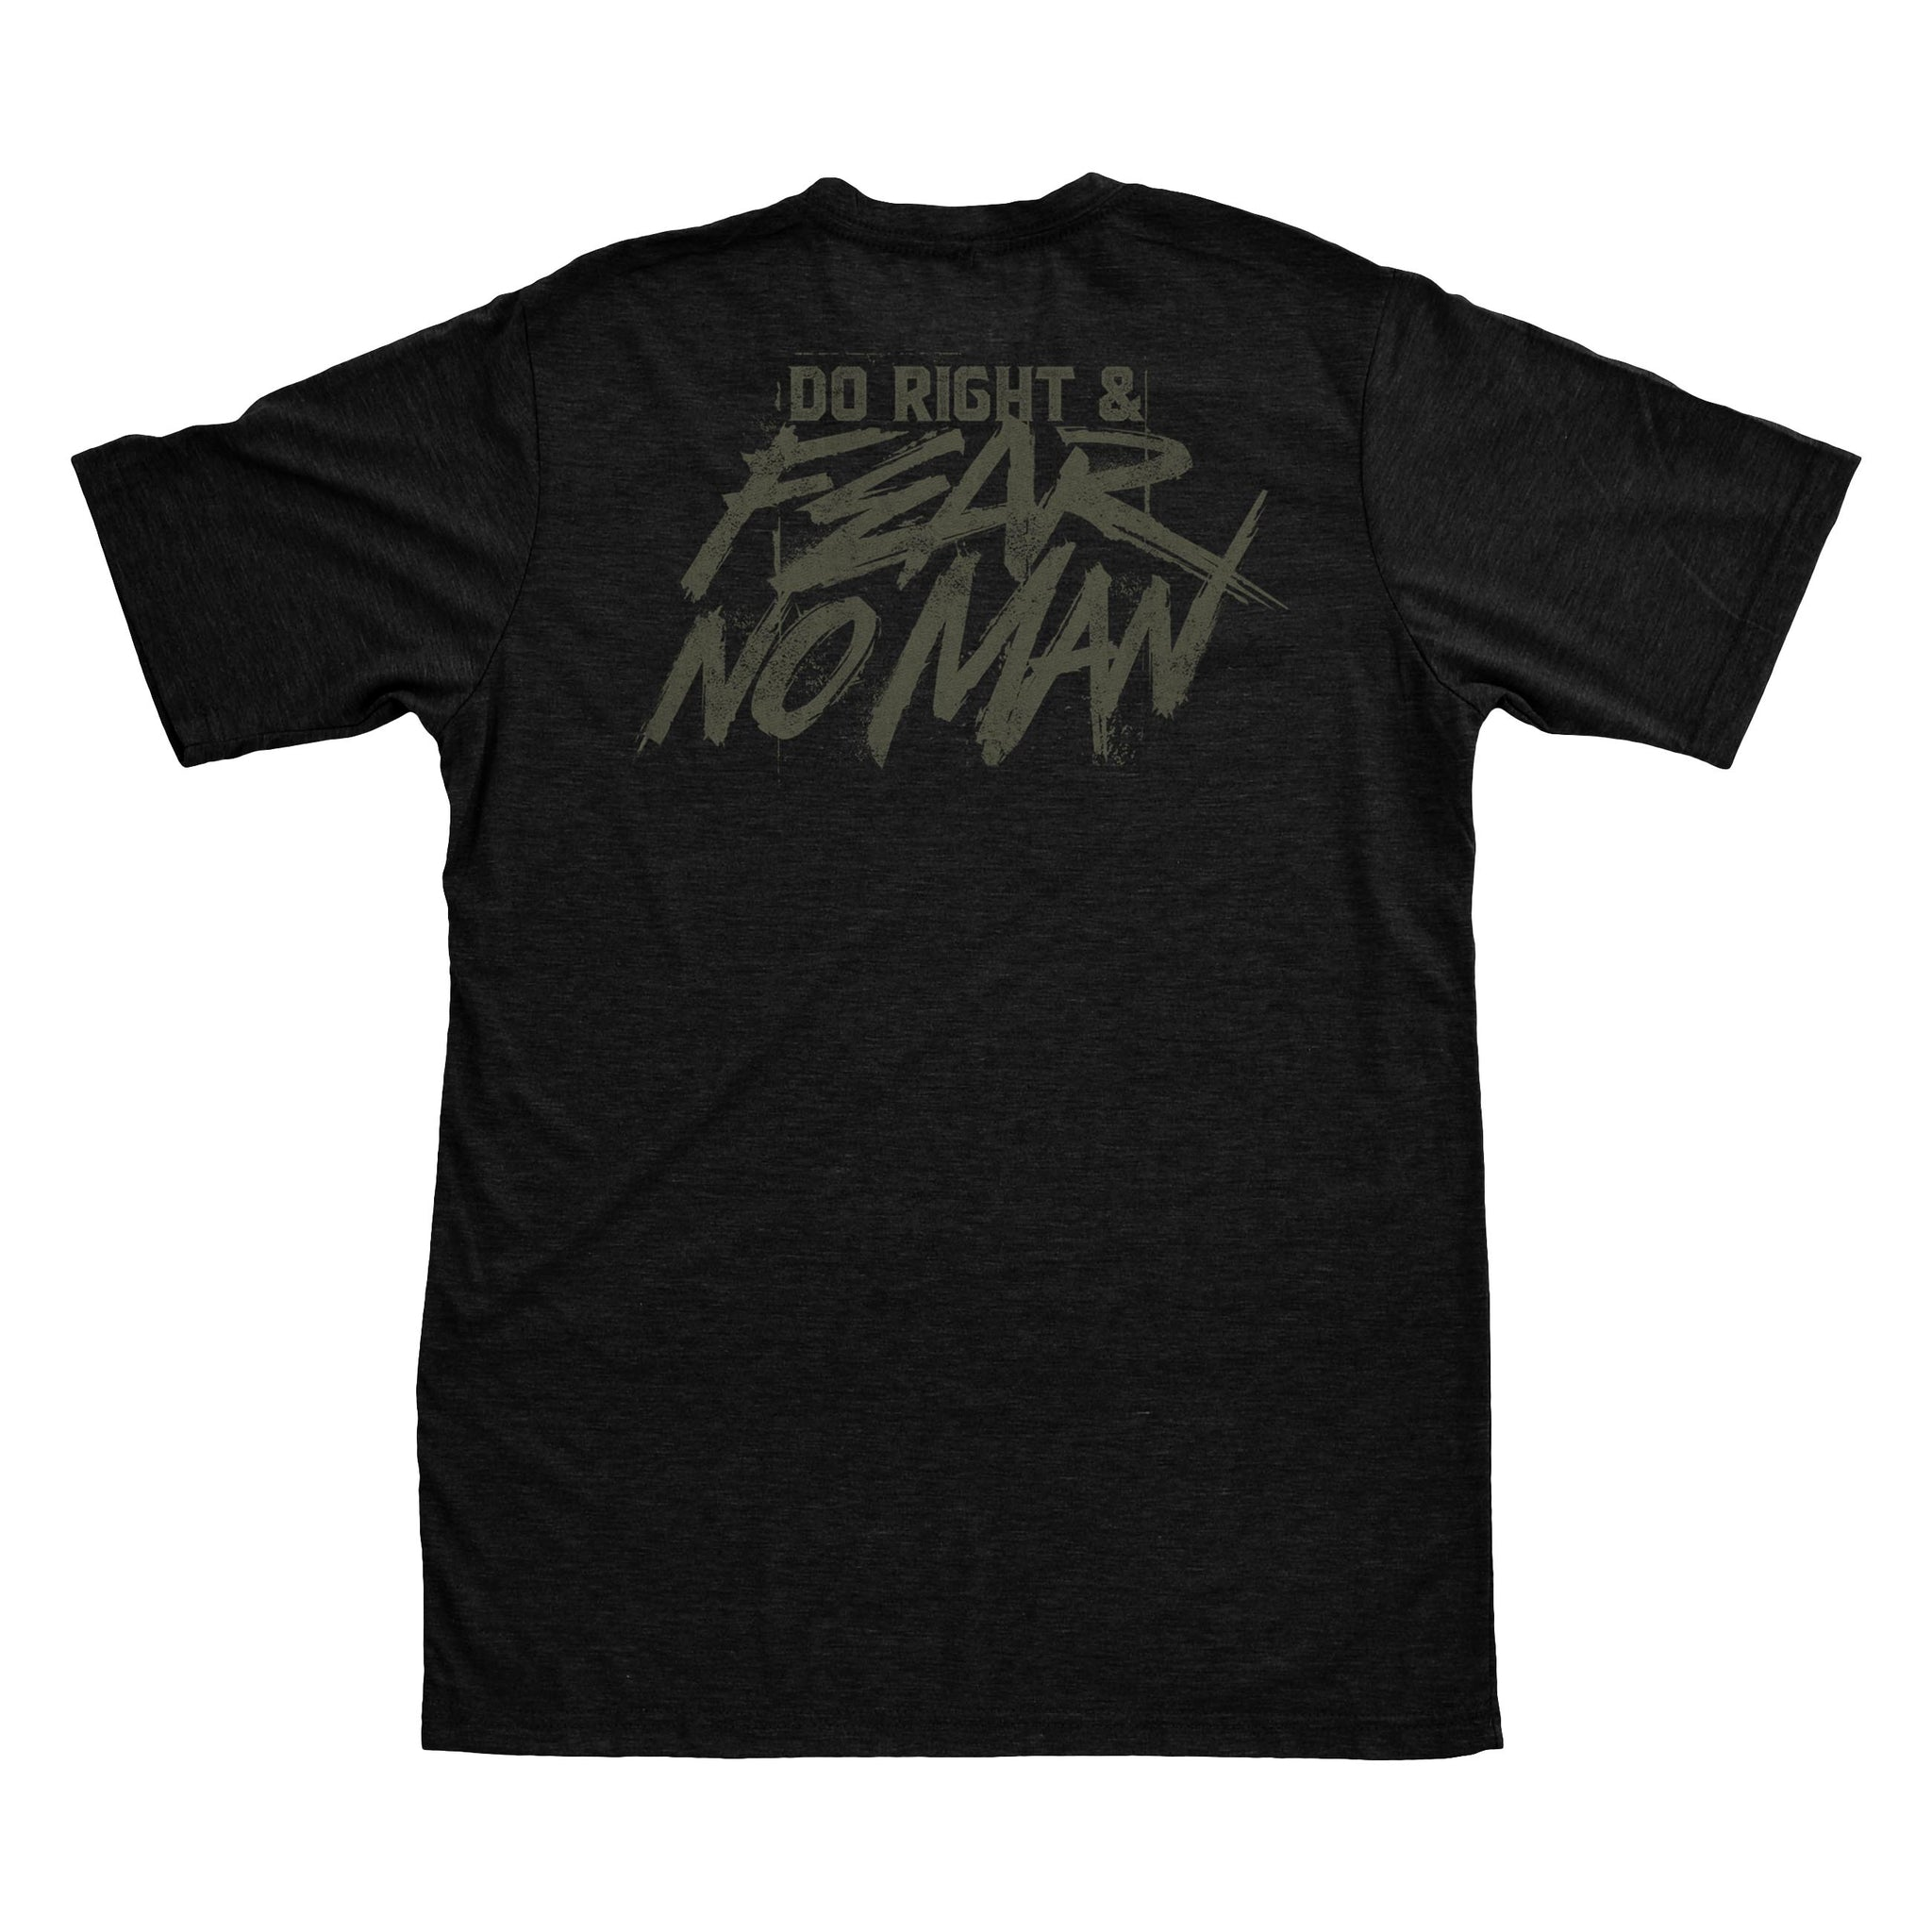 Do Right And Fear No Man - Black/Dark Olive - T-Shirts - Pipe Hitters Union